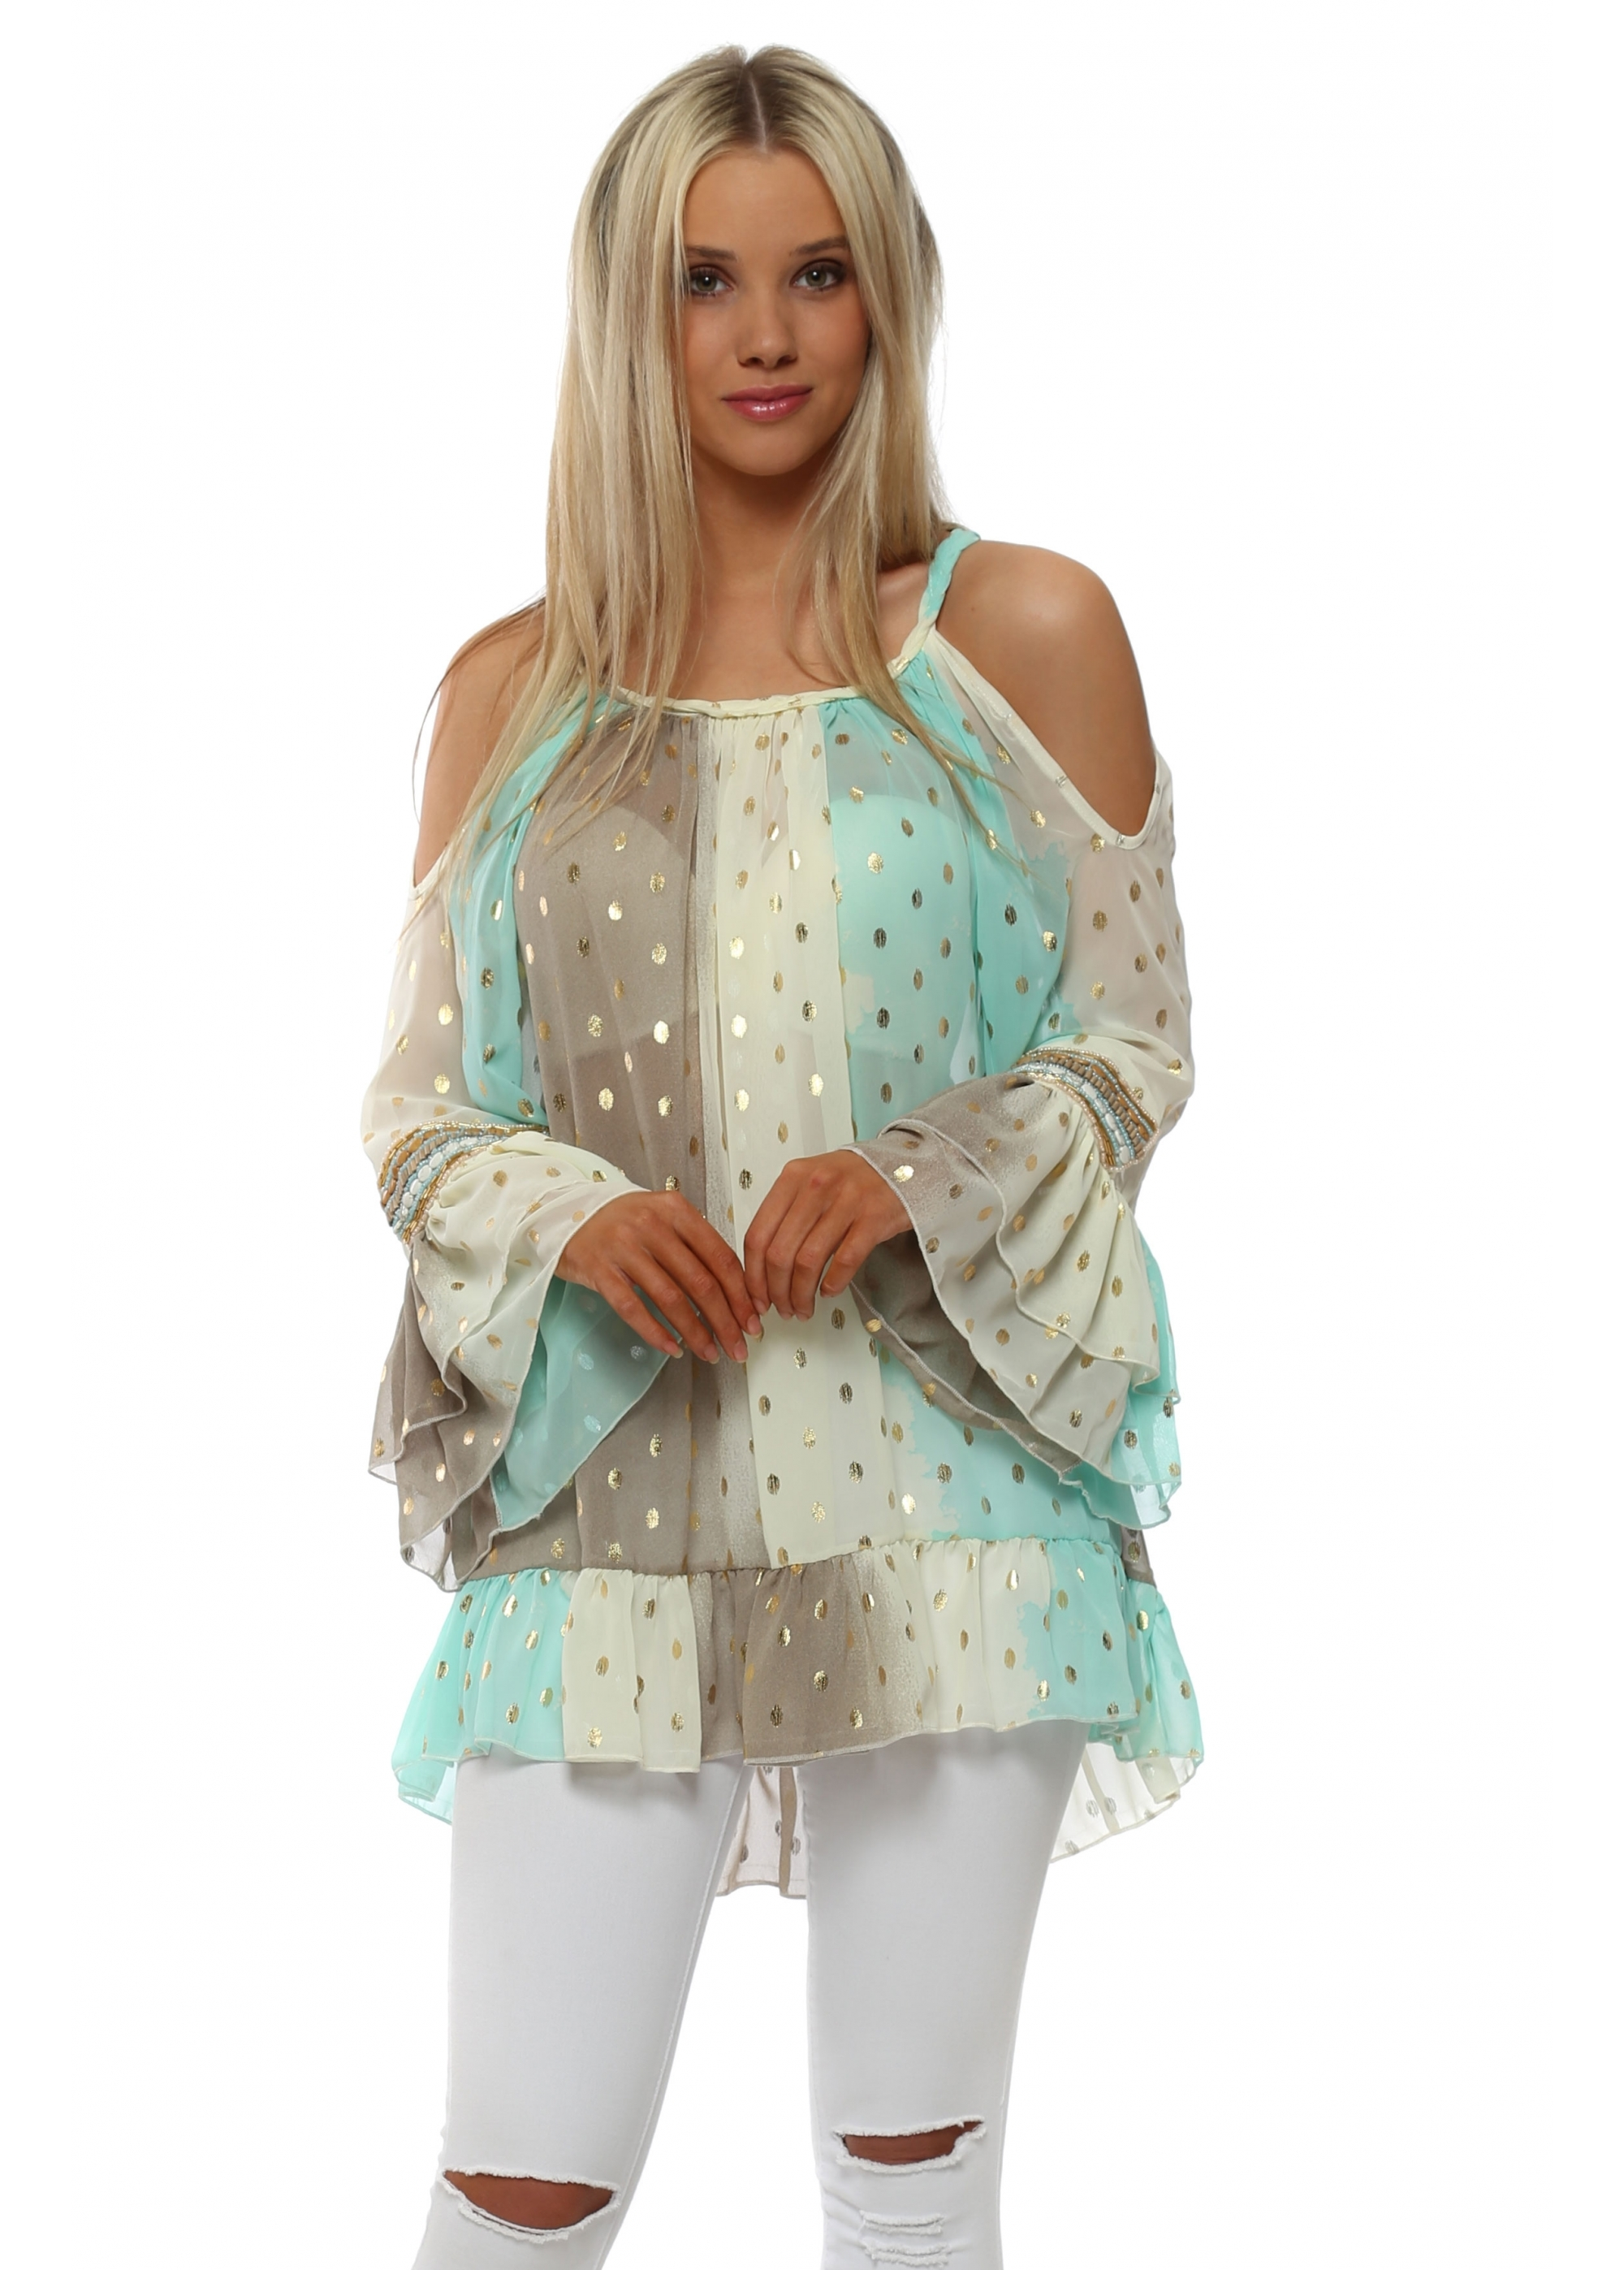 fe3bdd8147237 My Story Mint Gold Foil Spot Printed Tunic Top